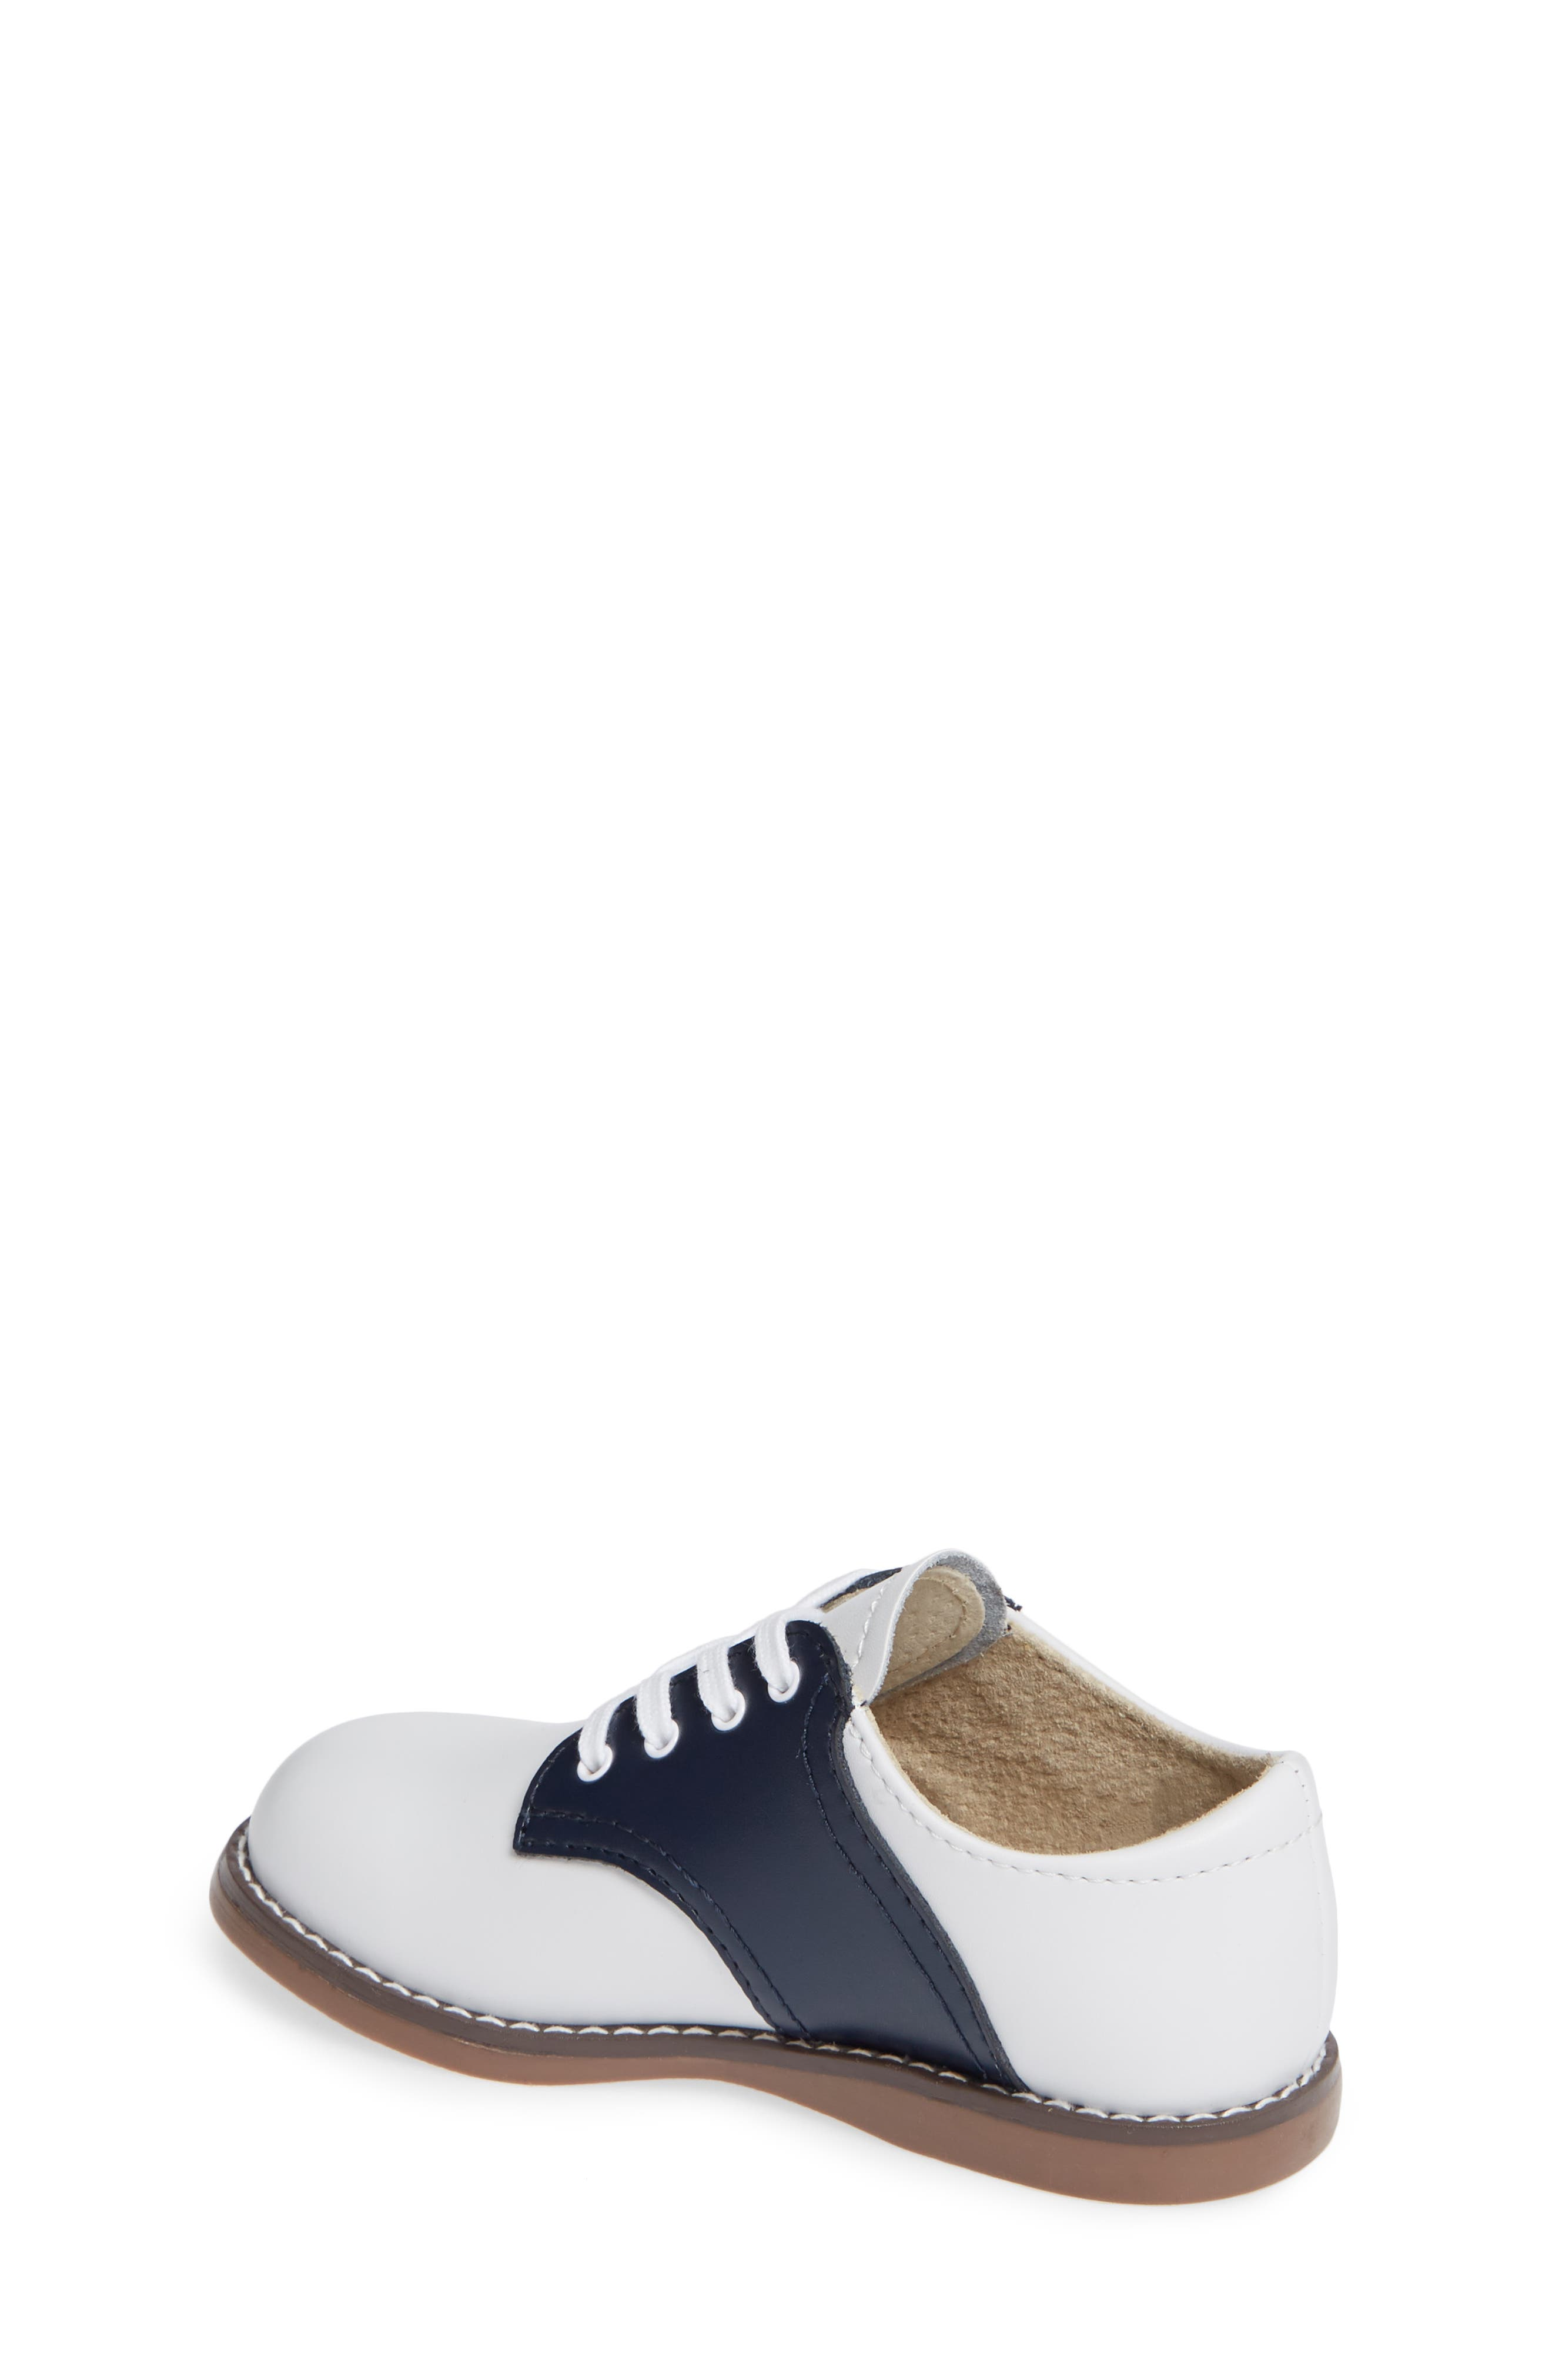 FOOTMATES,                             Cheer Oxford,                             Alternate thumbnail 2, color,                             WHITE/ NAVY